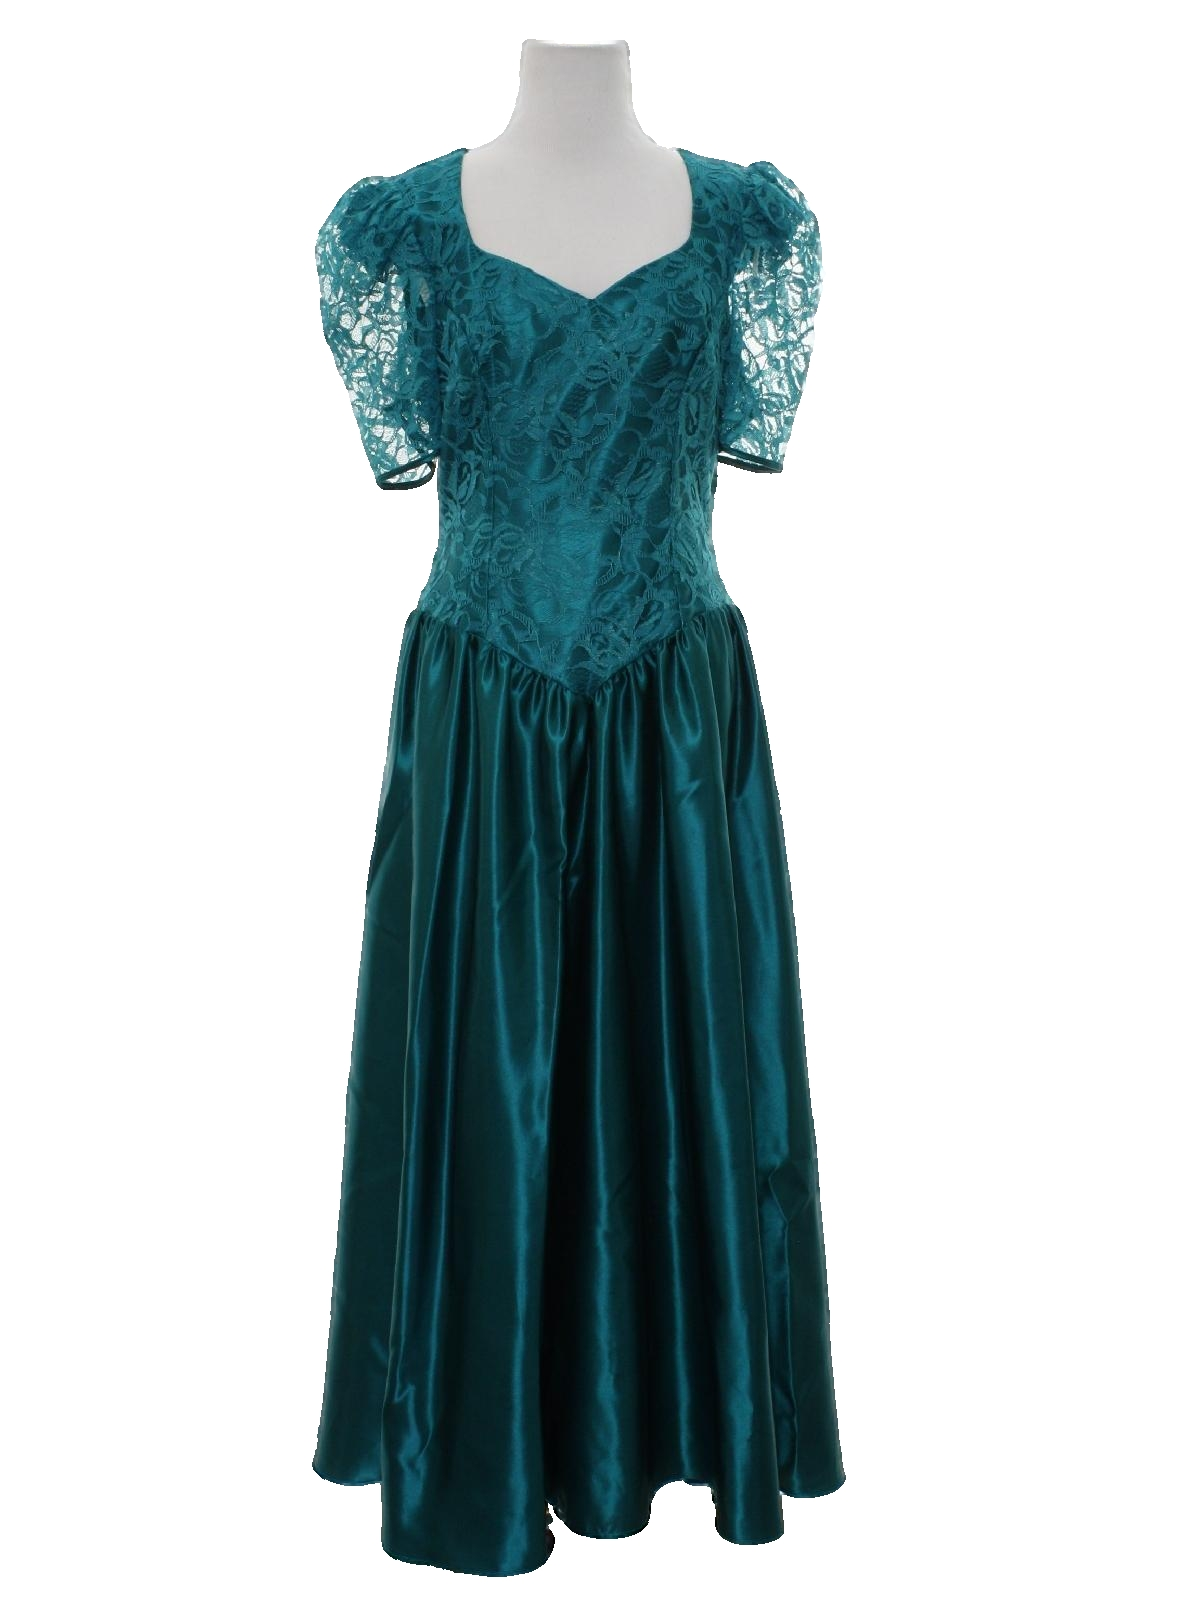 80s cocktail dress alfred angelo dream maker 80s alfred angelo 80s cocktail dress alfred angelo dream maker 80s alfred angelo dream maker womens deep teal background polyester satin and matching flower and leaf ombrellifo Choice Image